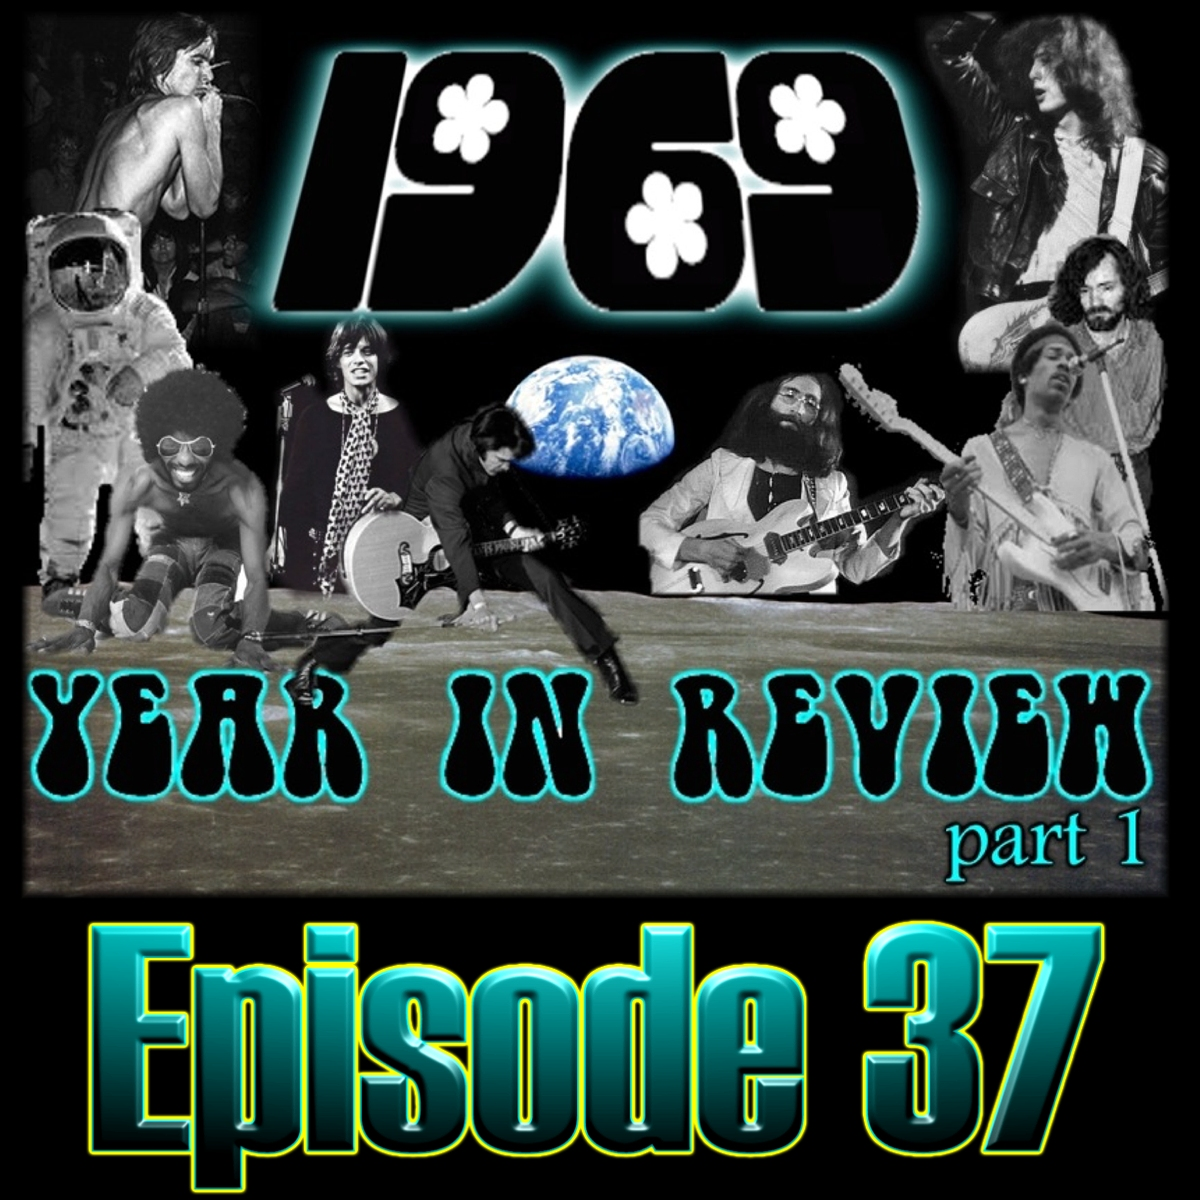 Episode 37 - 1969 Year in Review Part 1